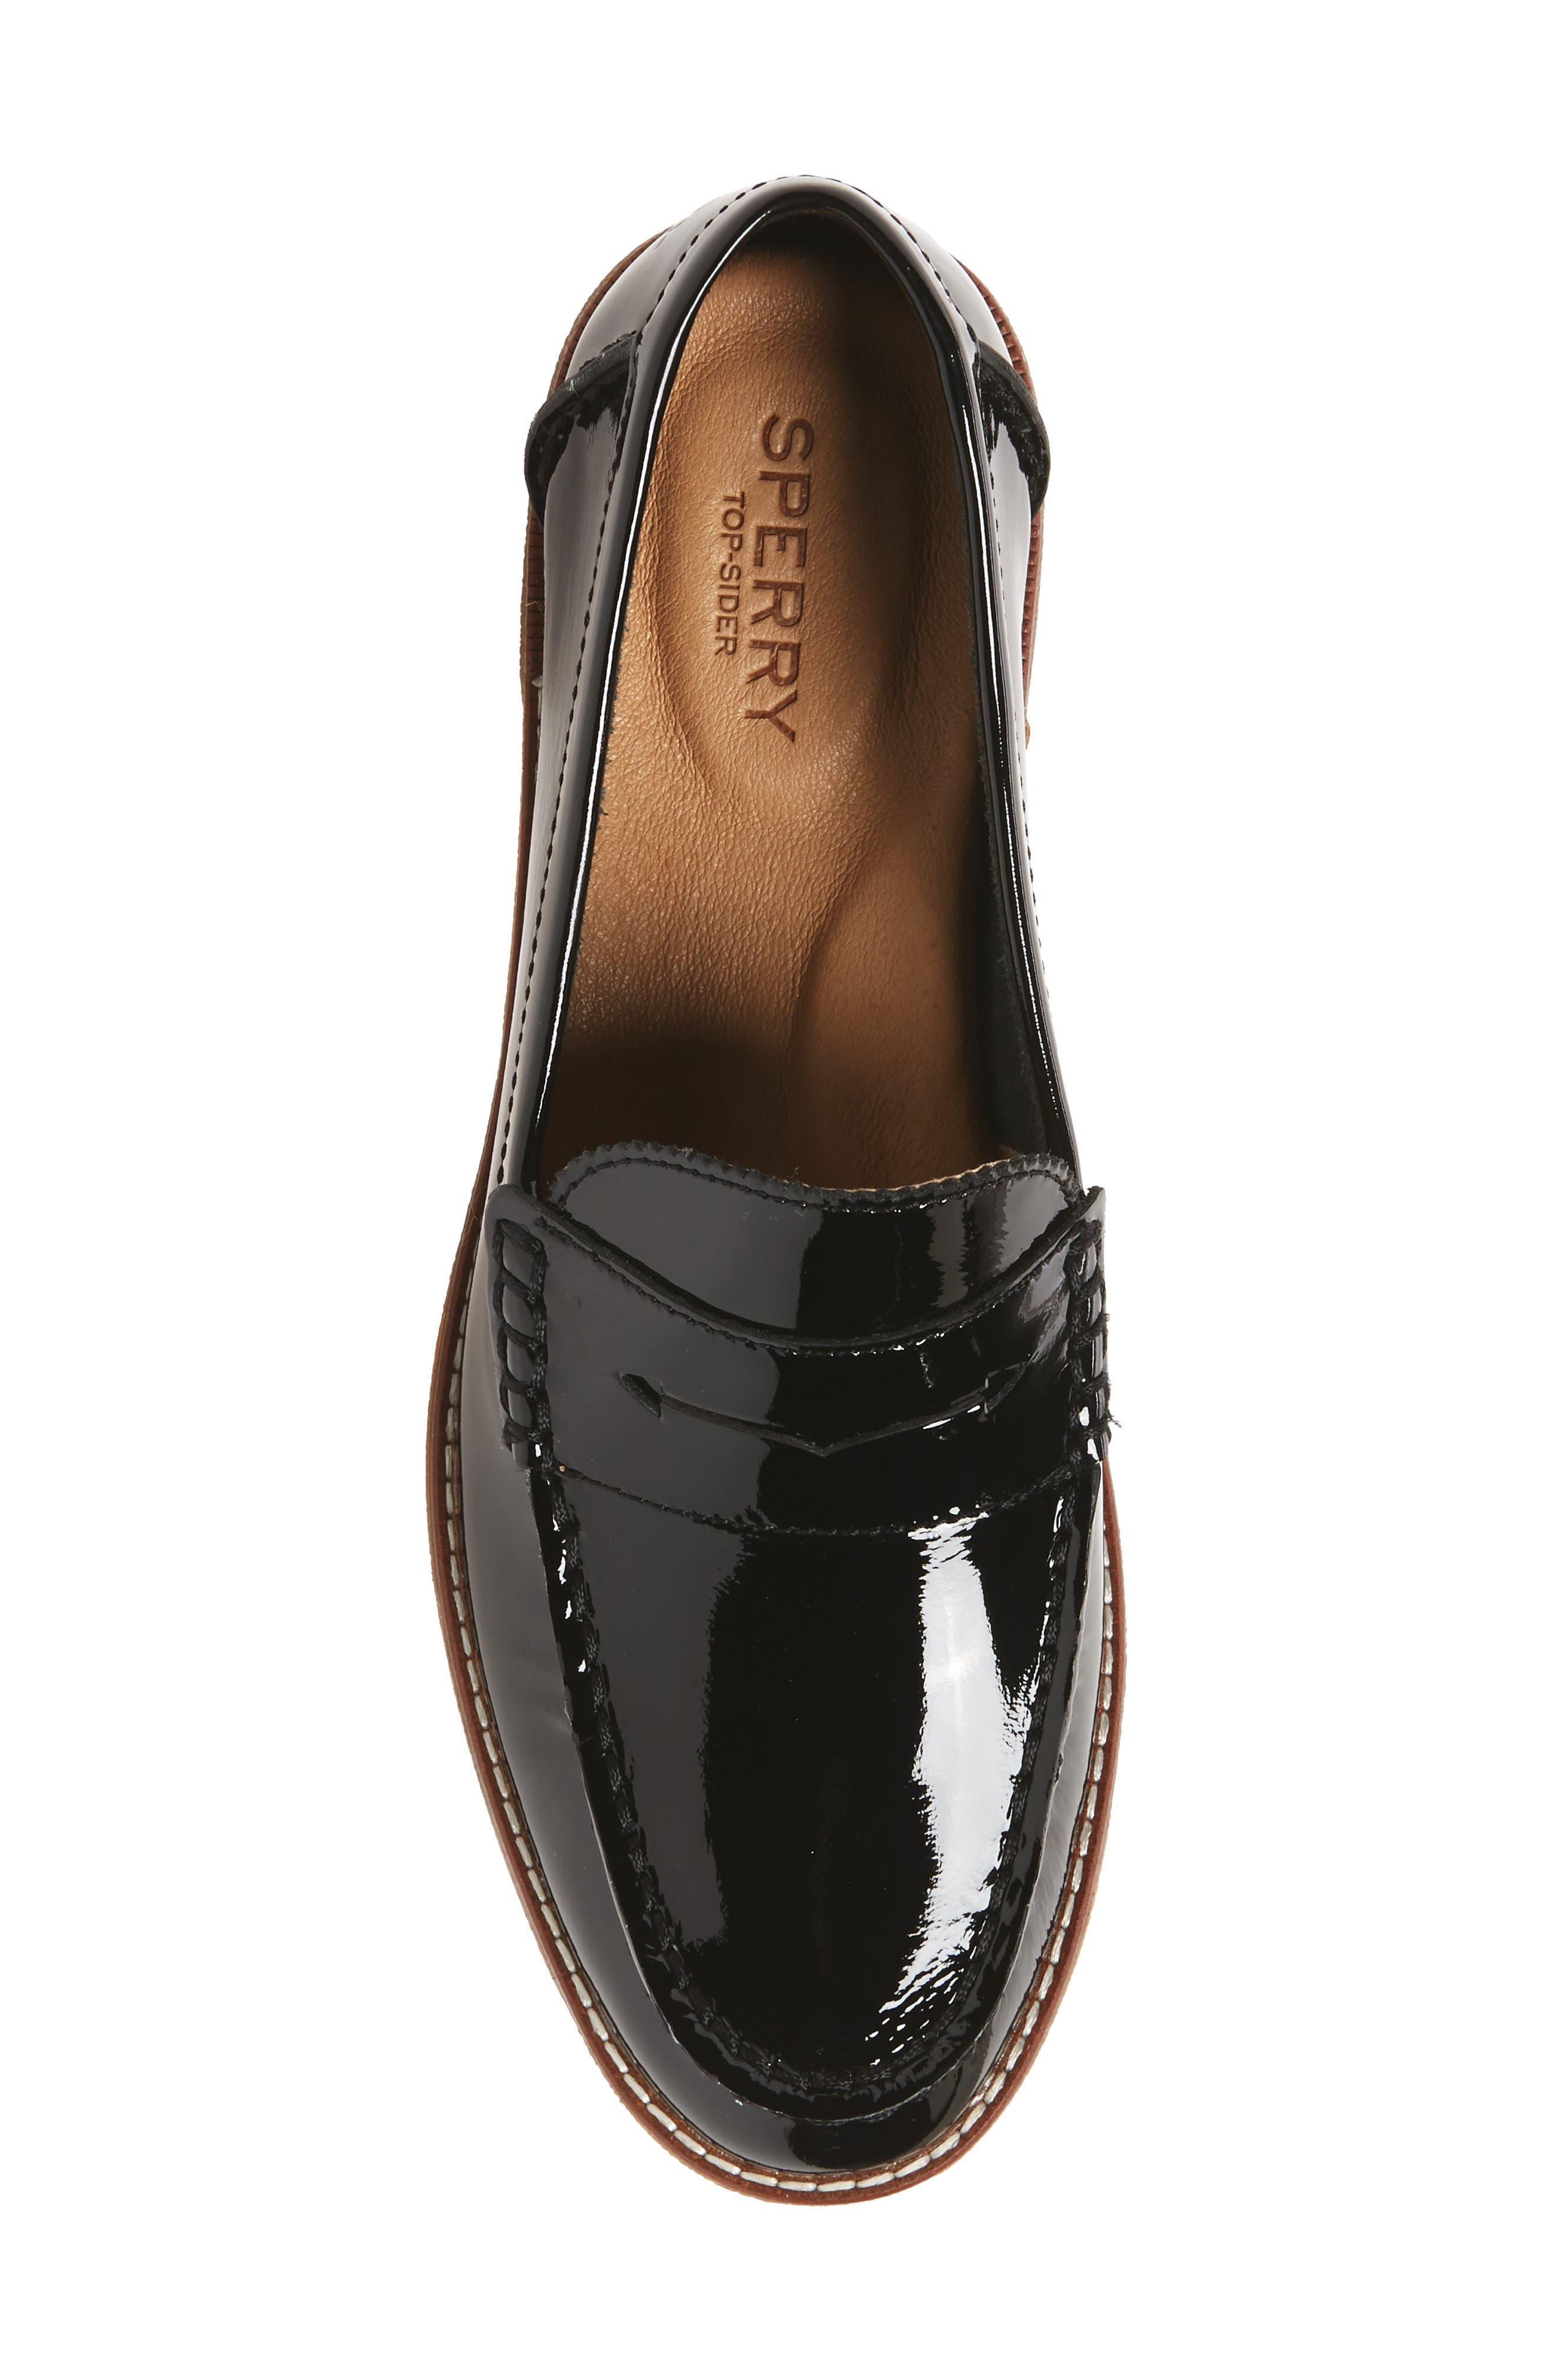 Seaport Penny Loafer,                             Alternate thumbnail 5, color,                             BLACK PATENT LEATHER